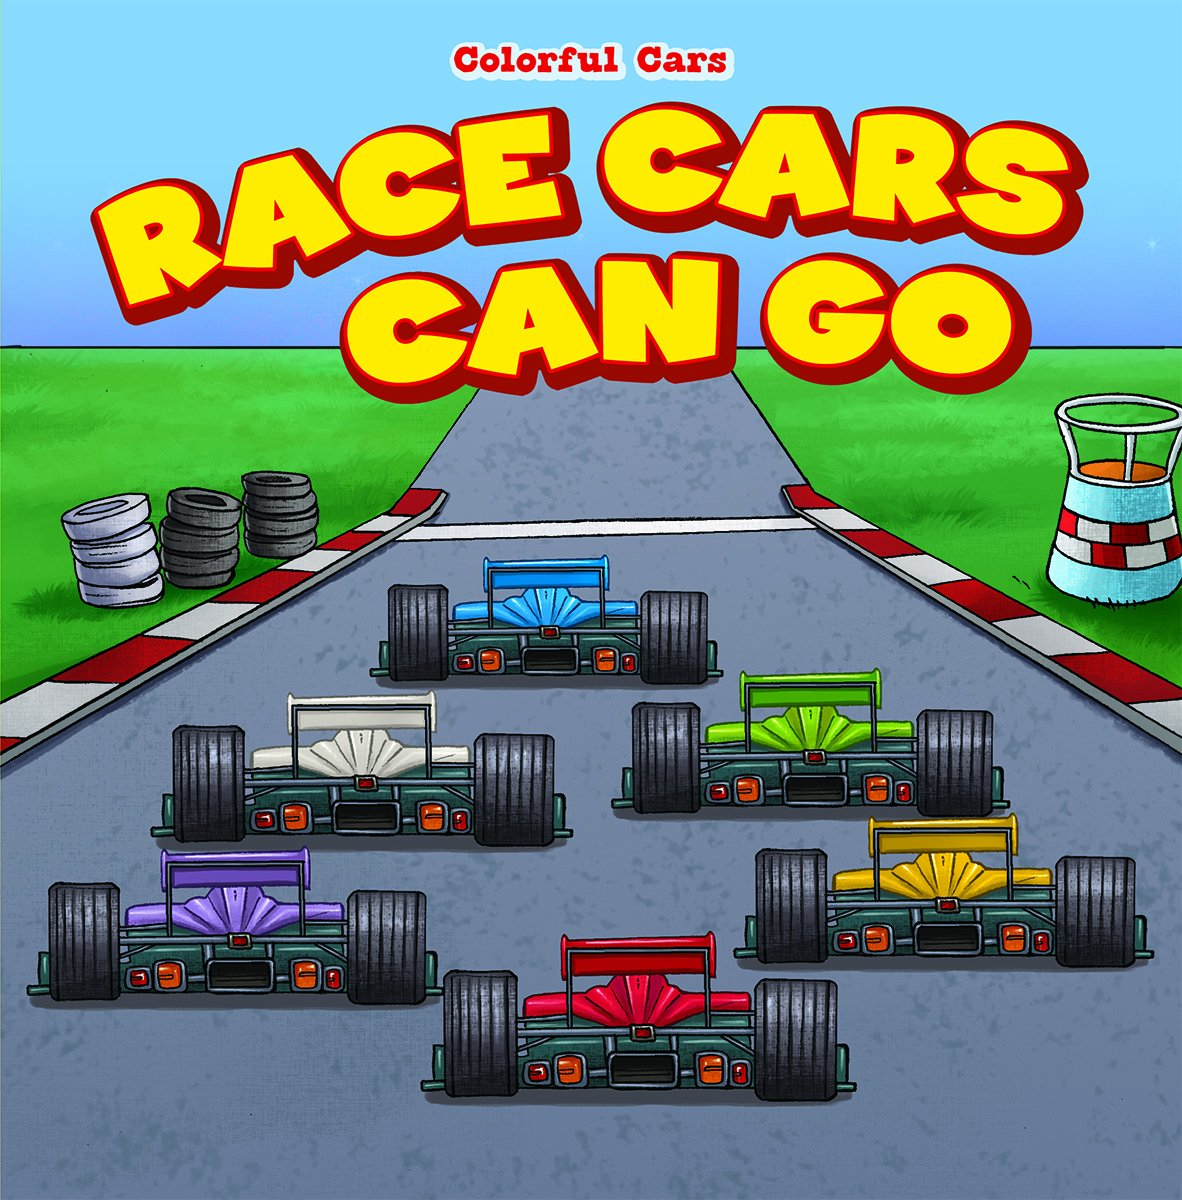 Race Cars Can Go (Colorful Cars)